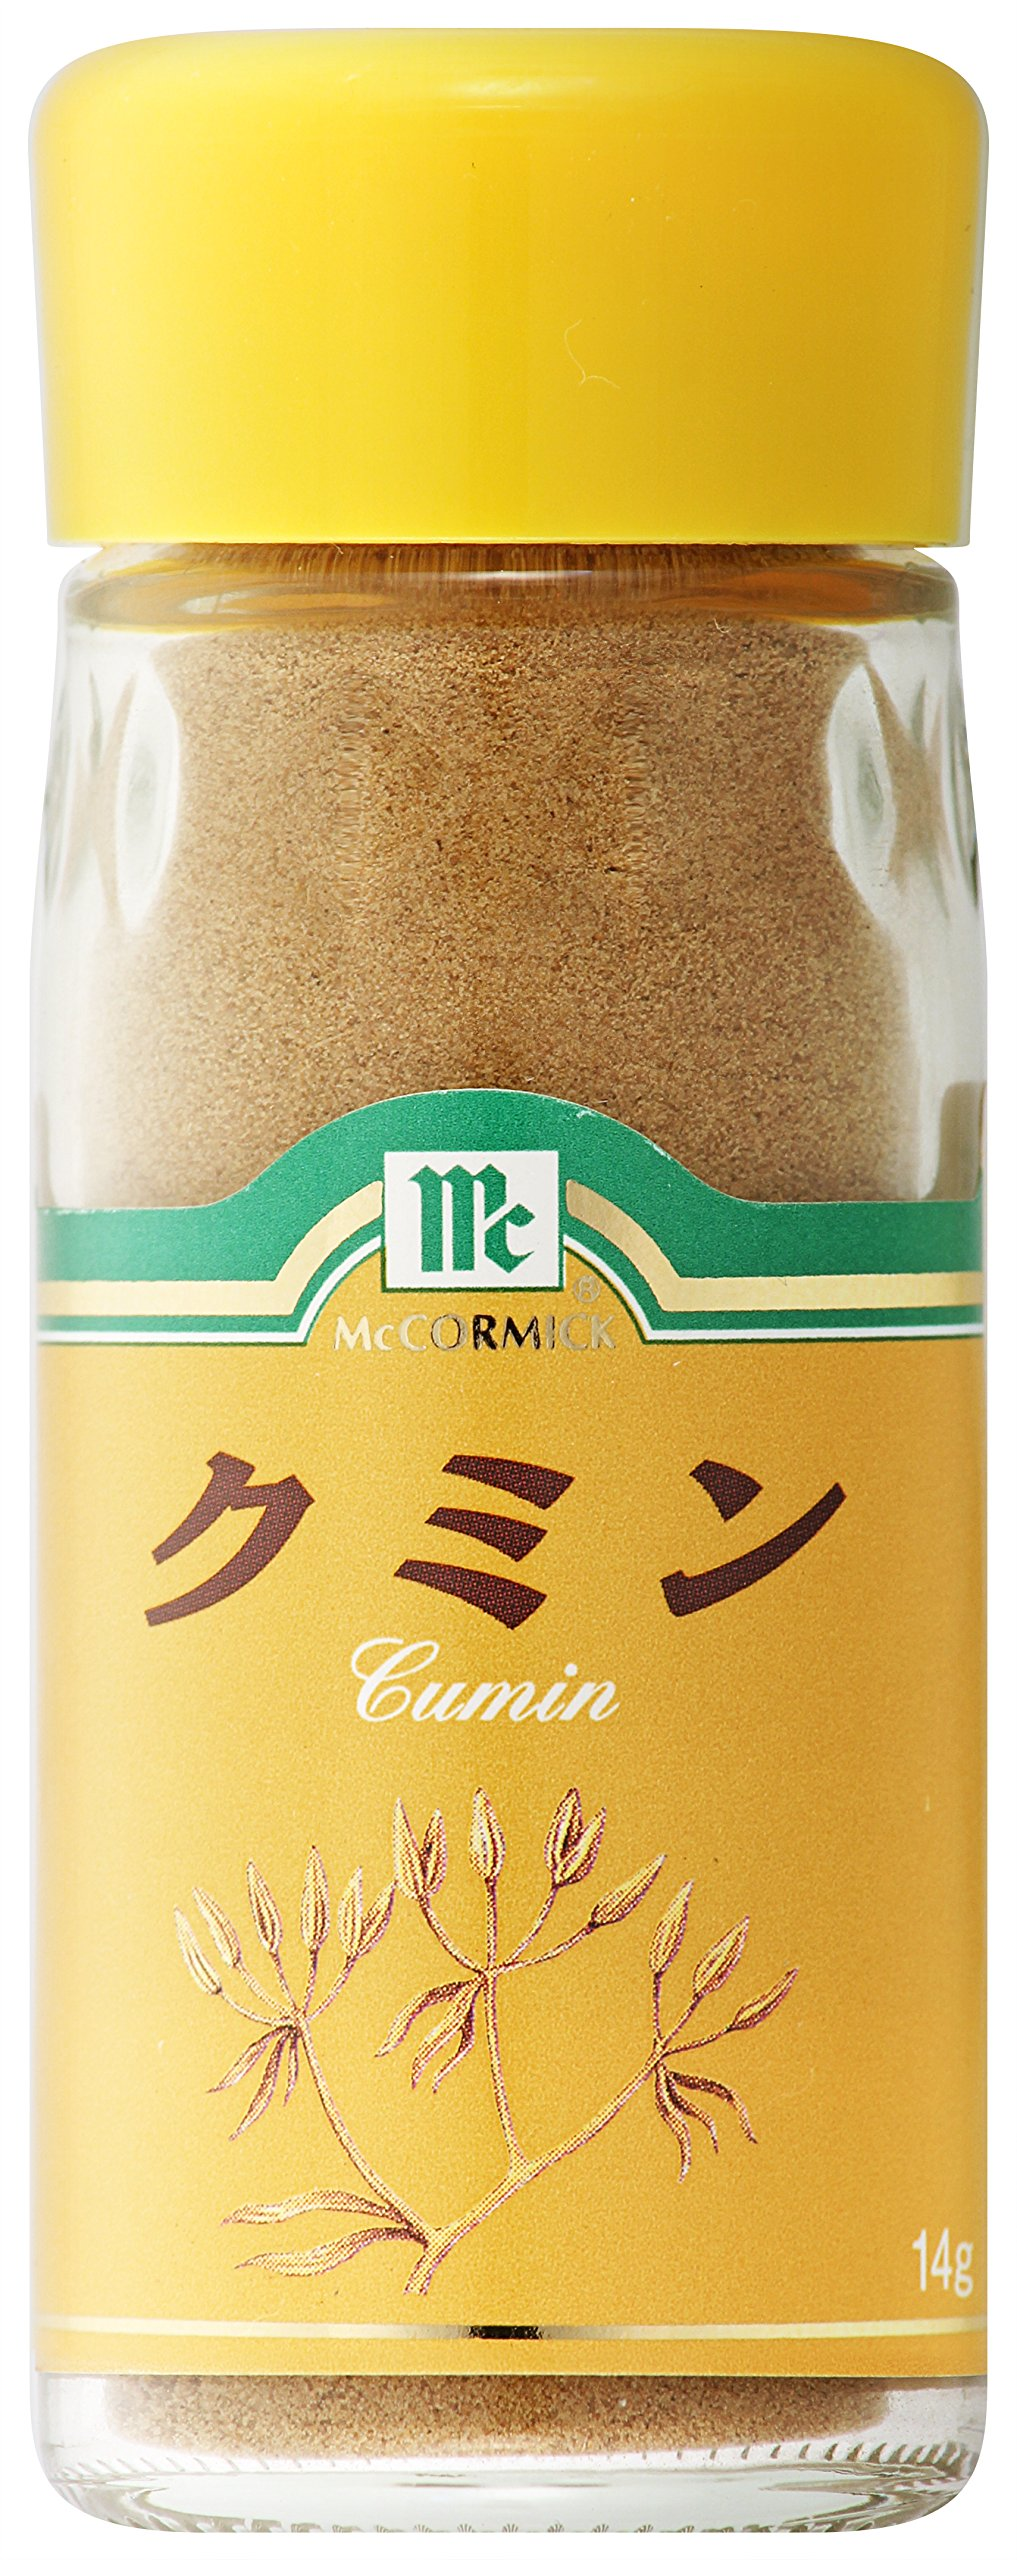 Yuki MC GL cumin powder 14g